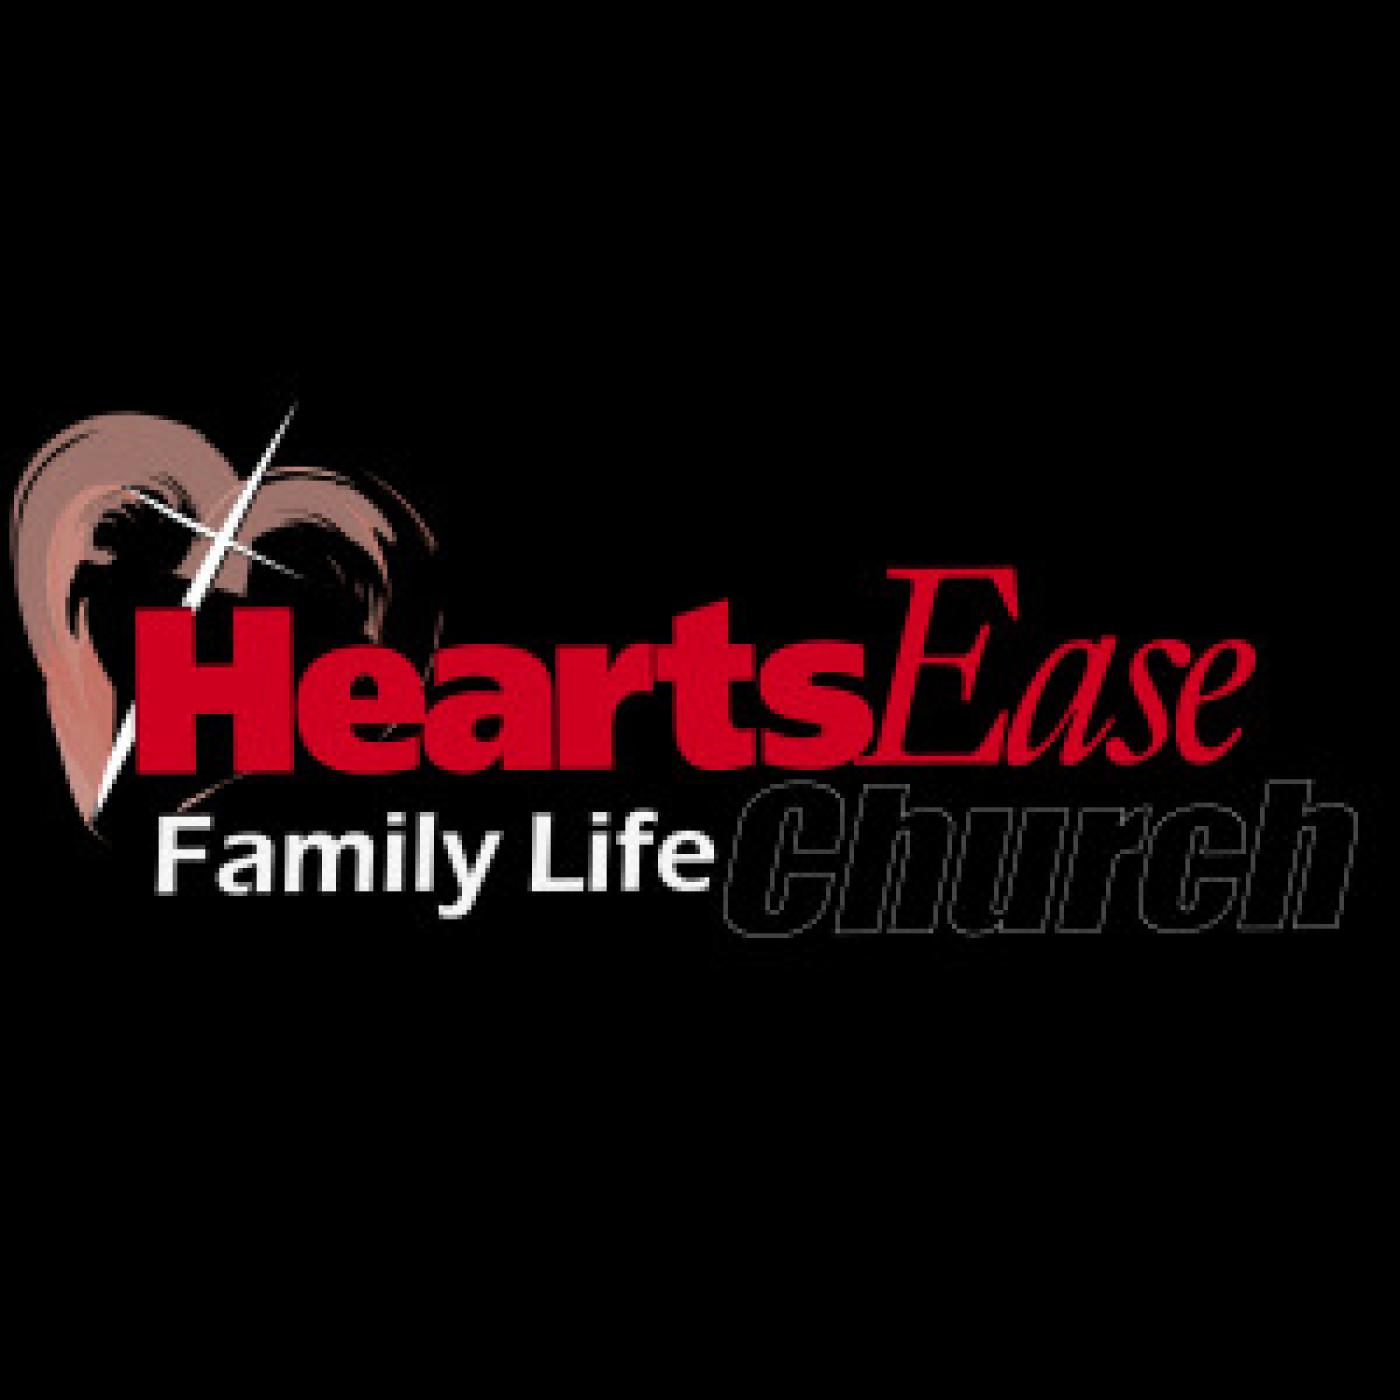 HeartsEase Family Life Church